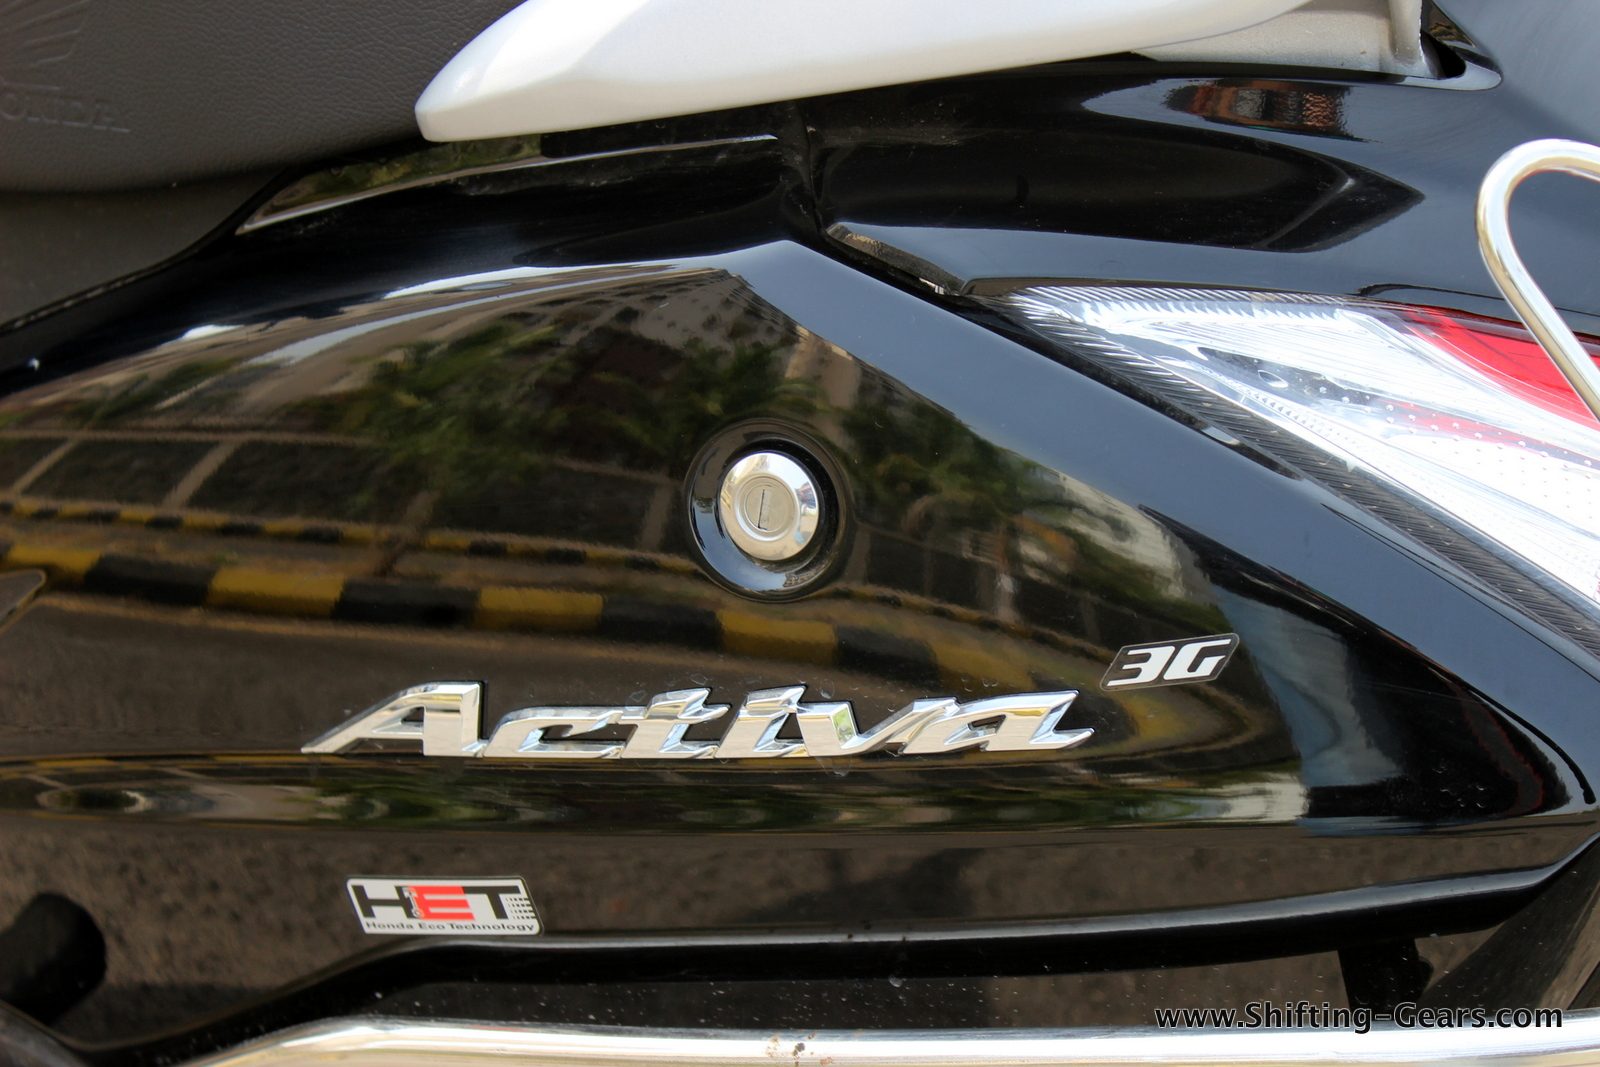 hmsi-honda-activa-3g-scooter-review-18